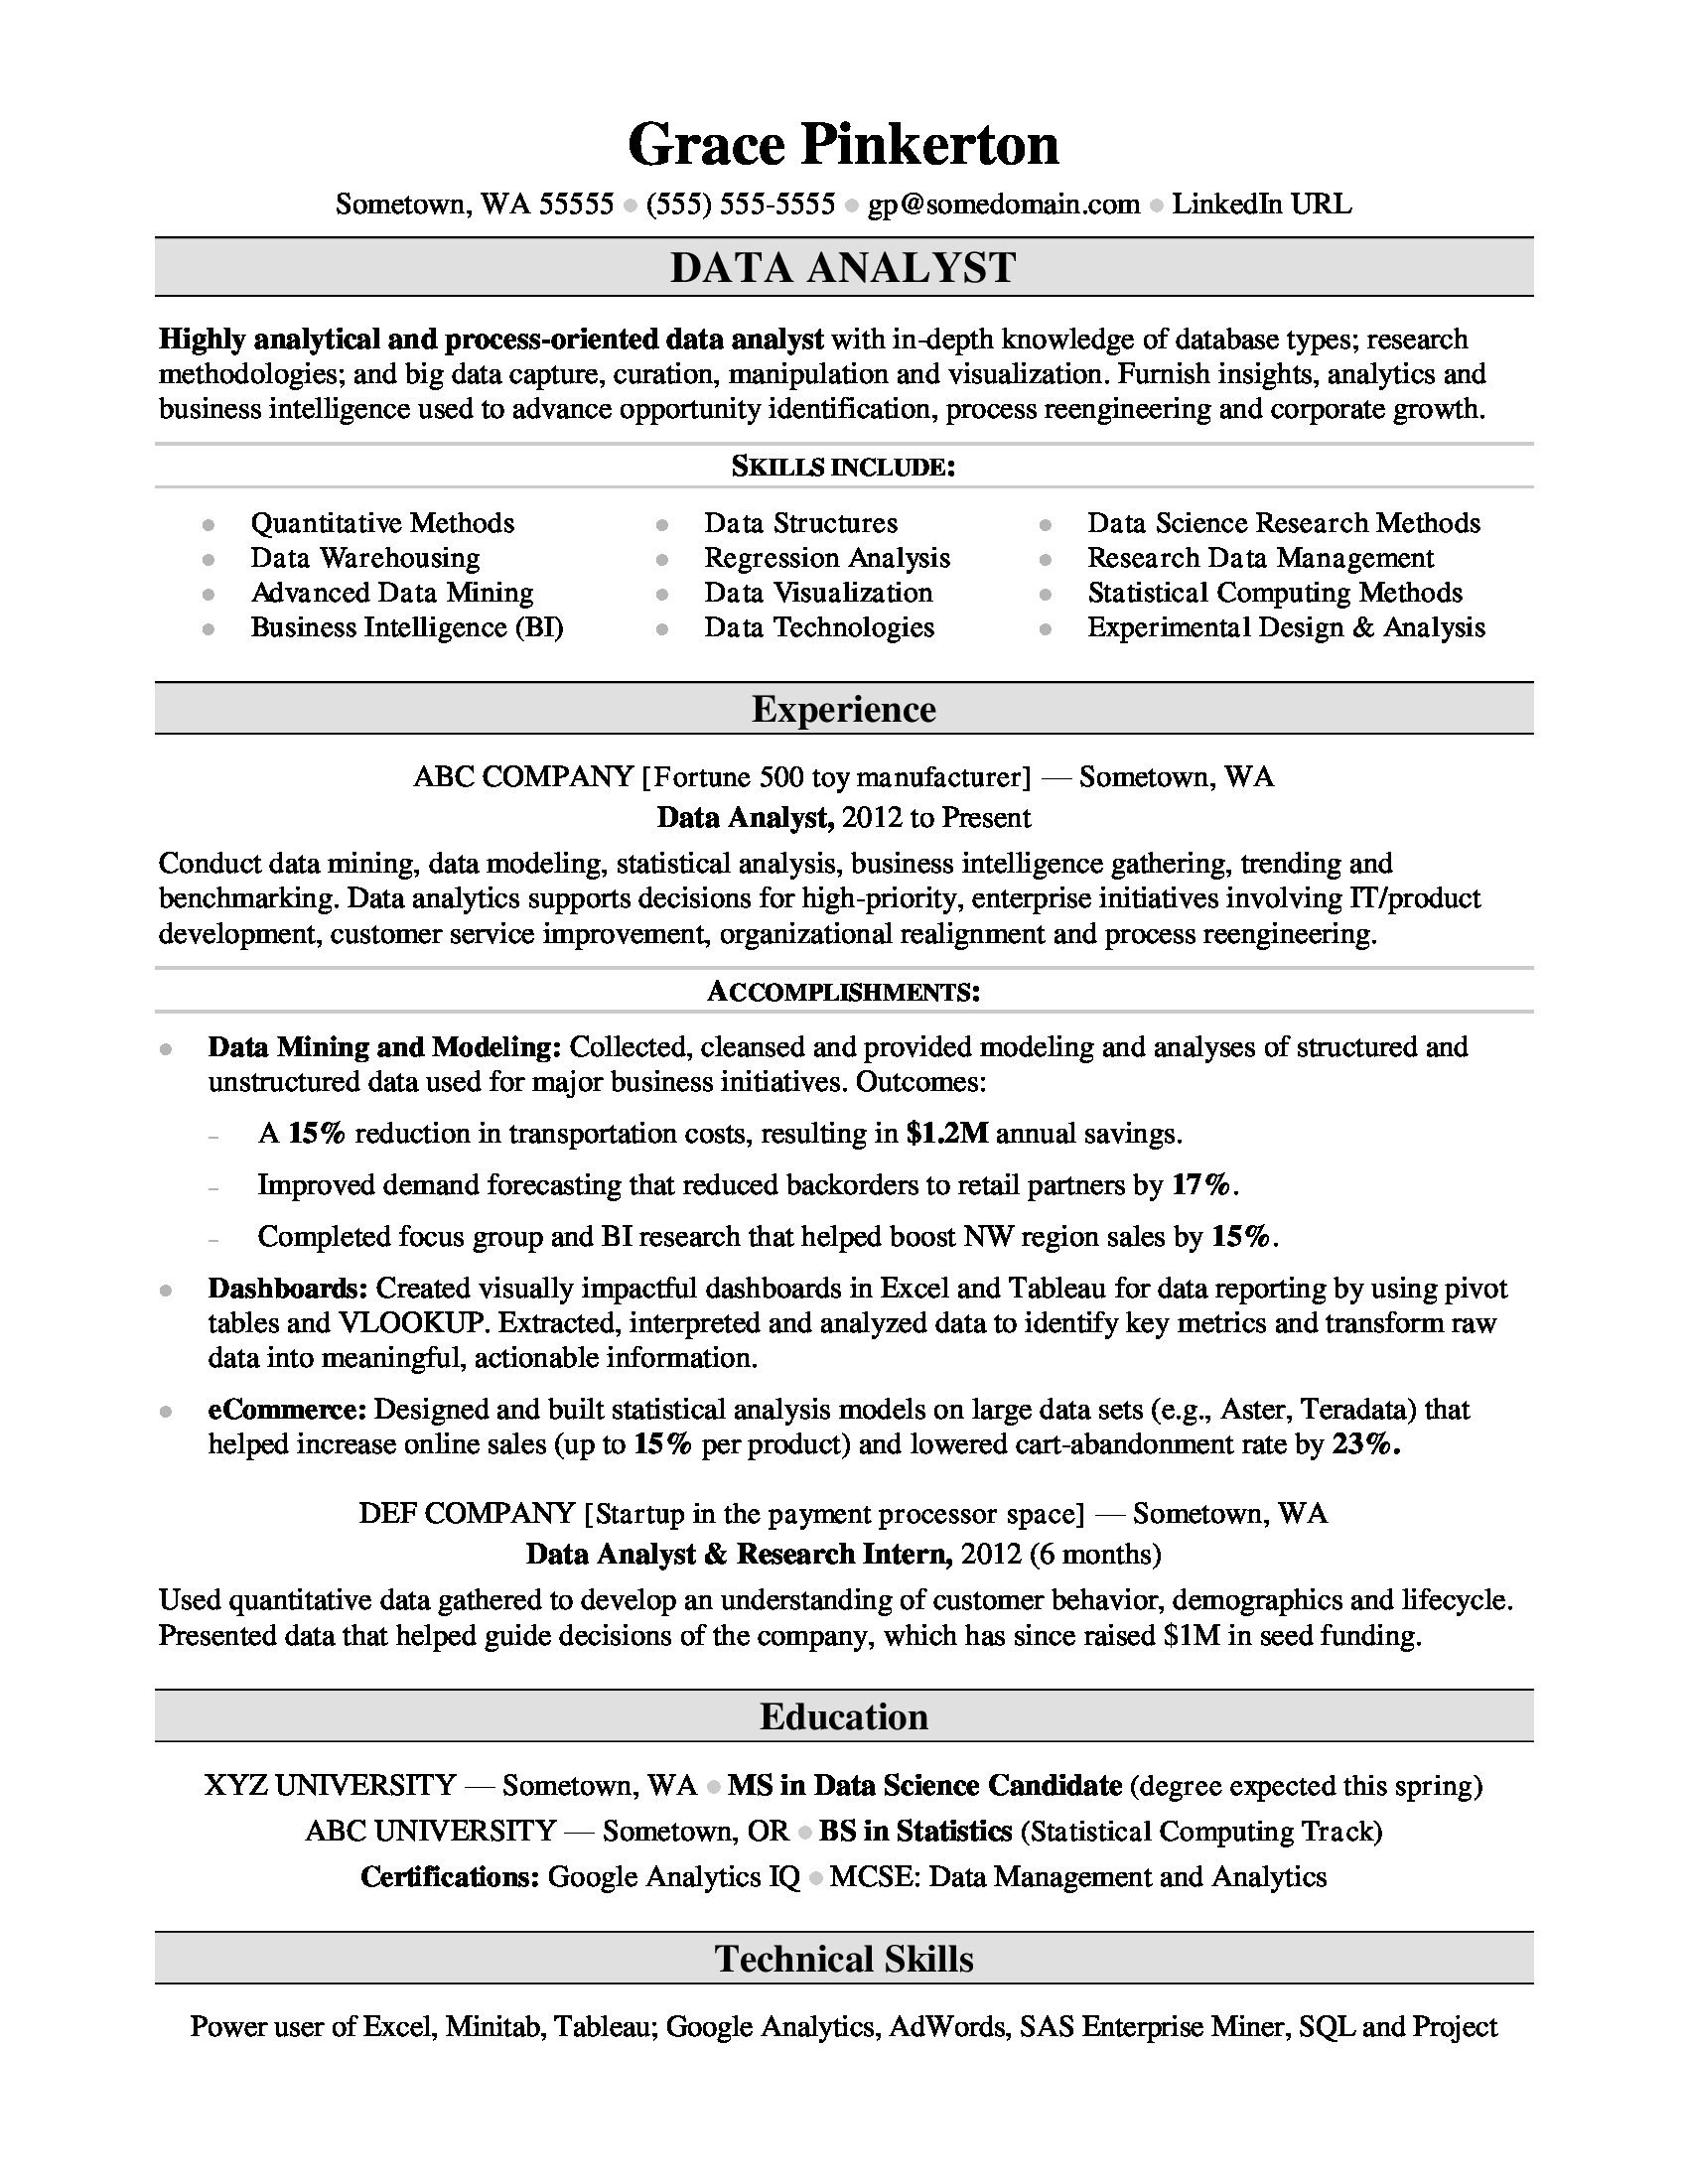 Data Analysis Resume - 20 New Data Analyst Resume Sample